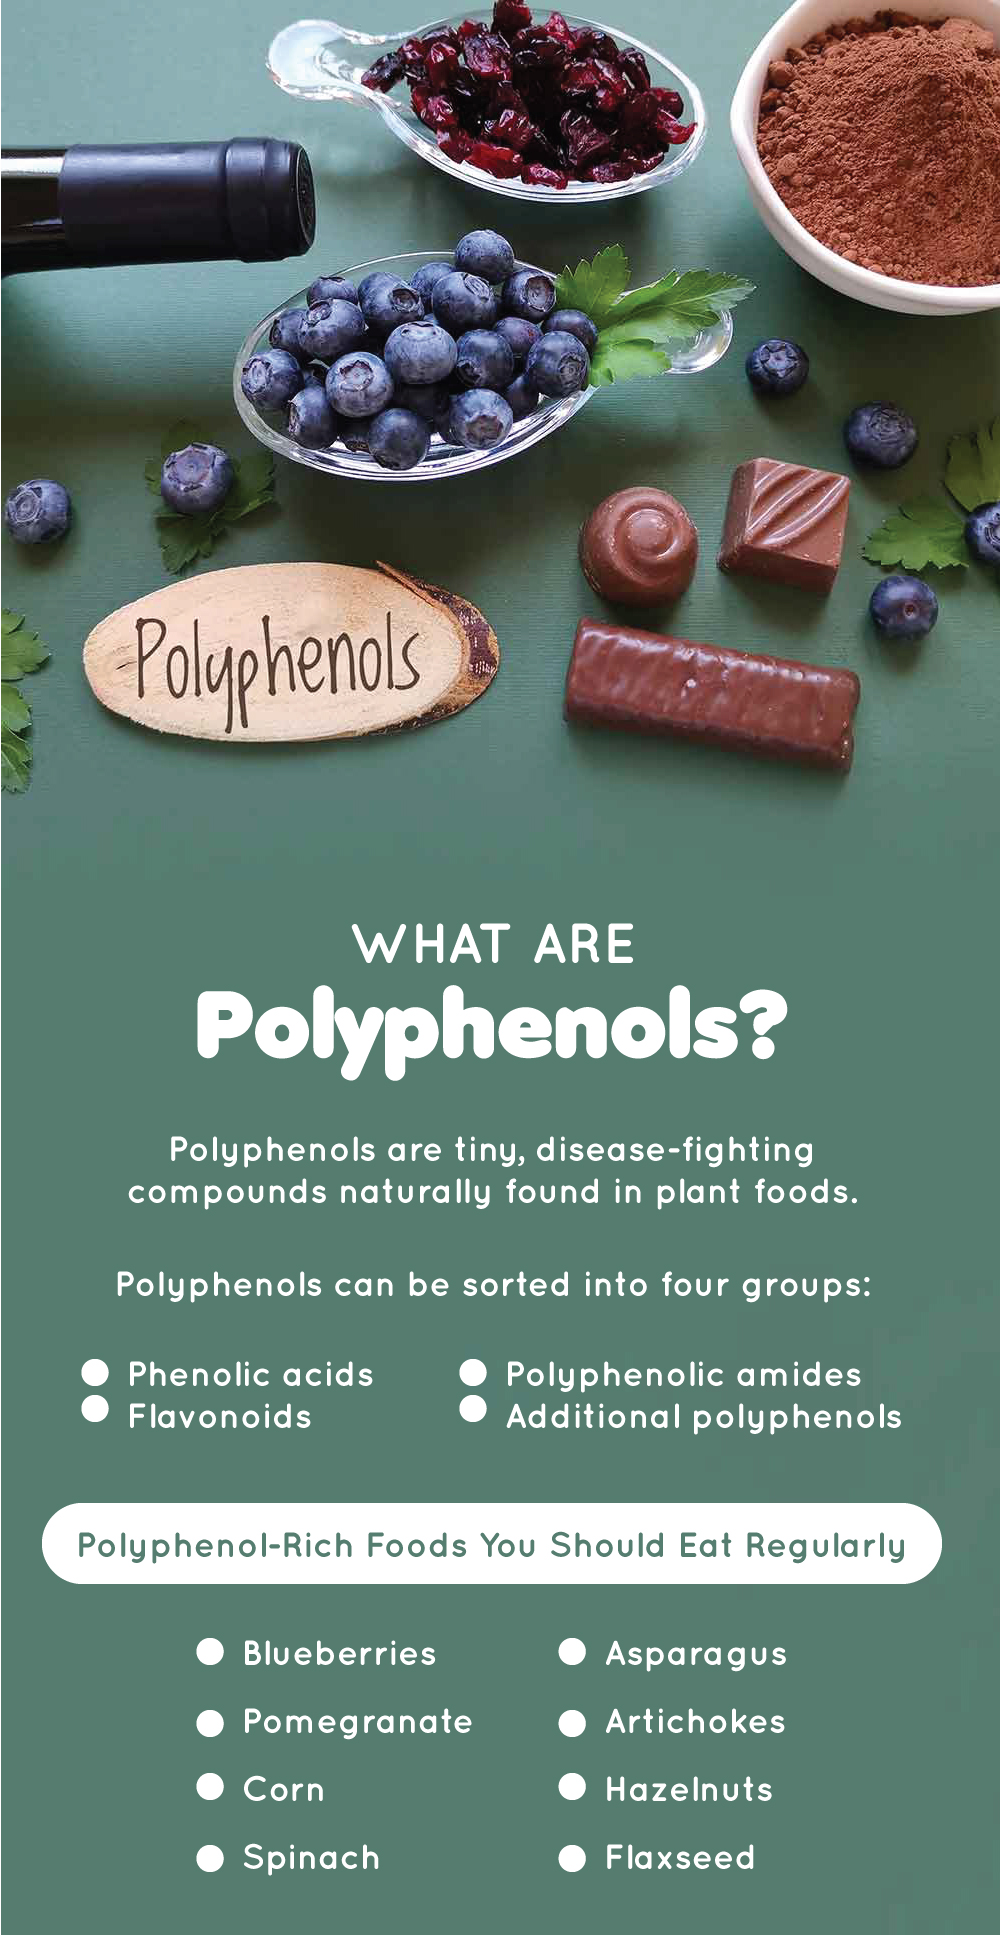 What Are Polyphenols?